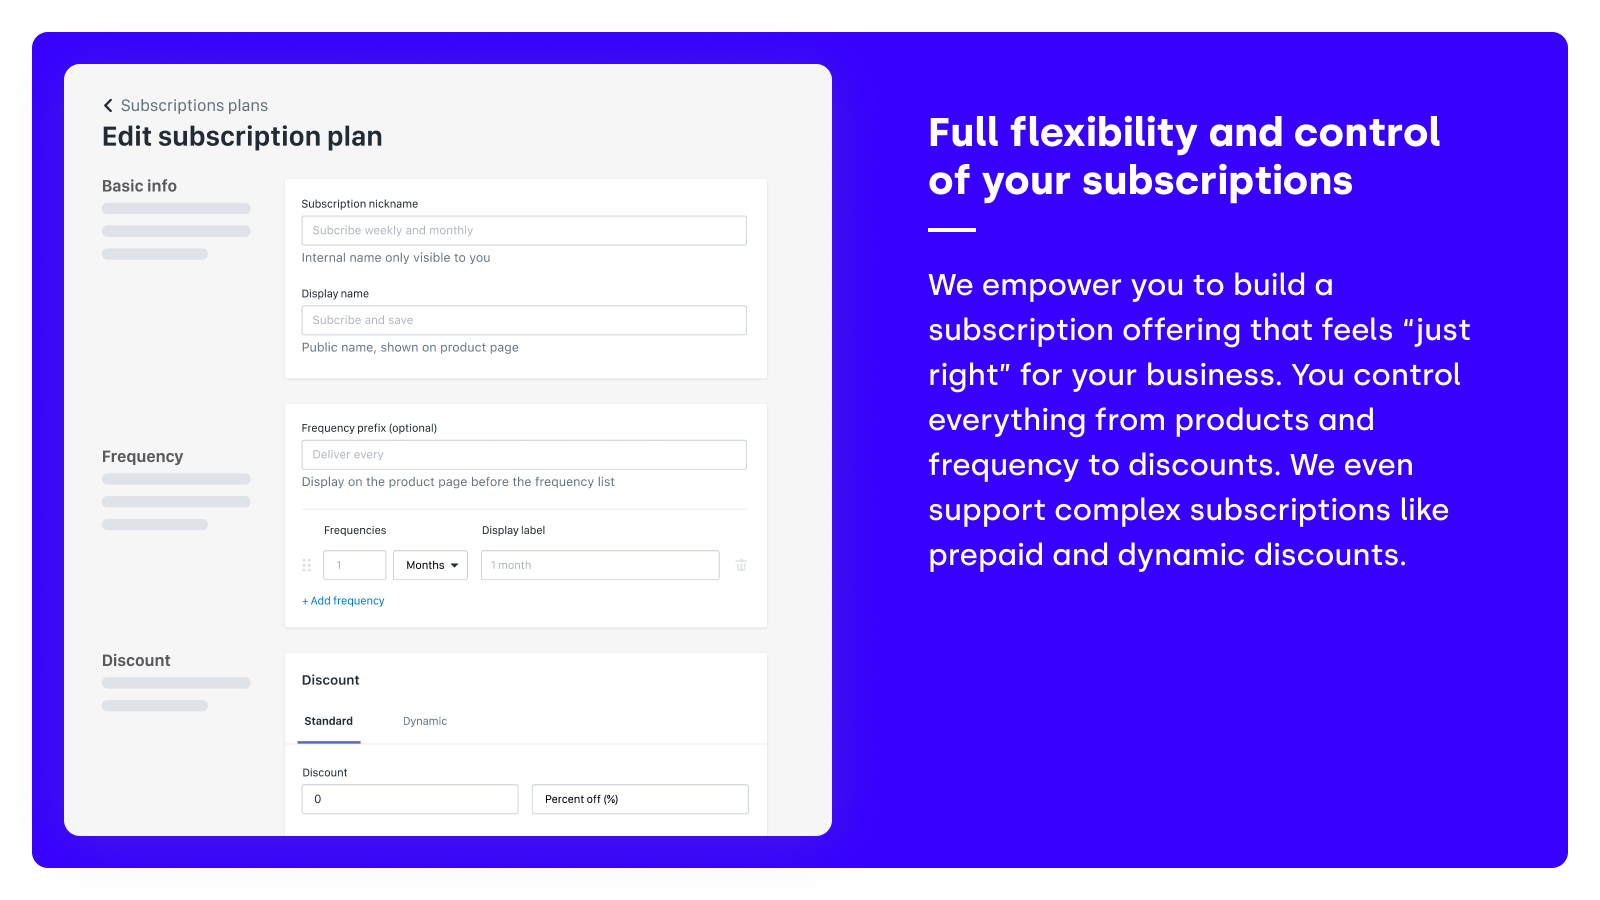 Full flexibility and control of your subscriptions